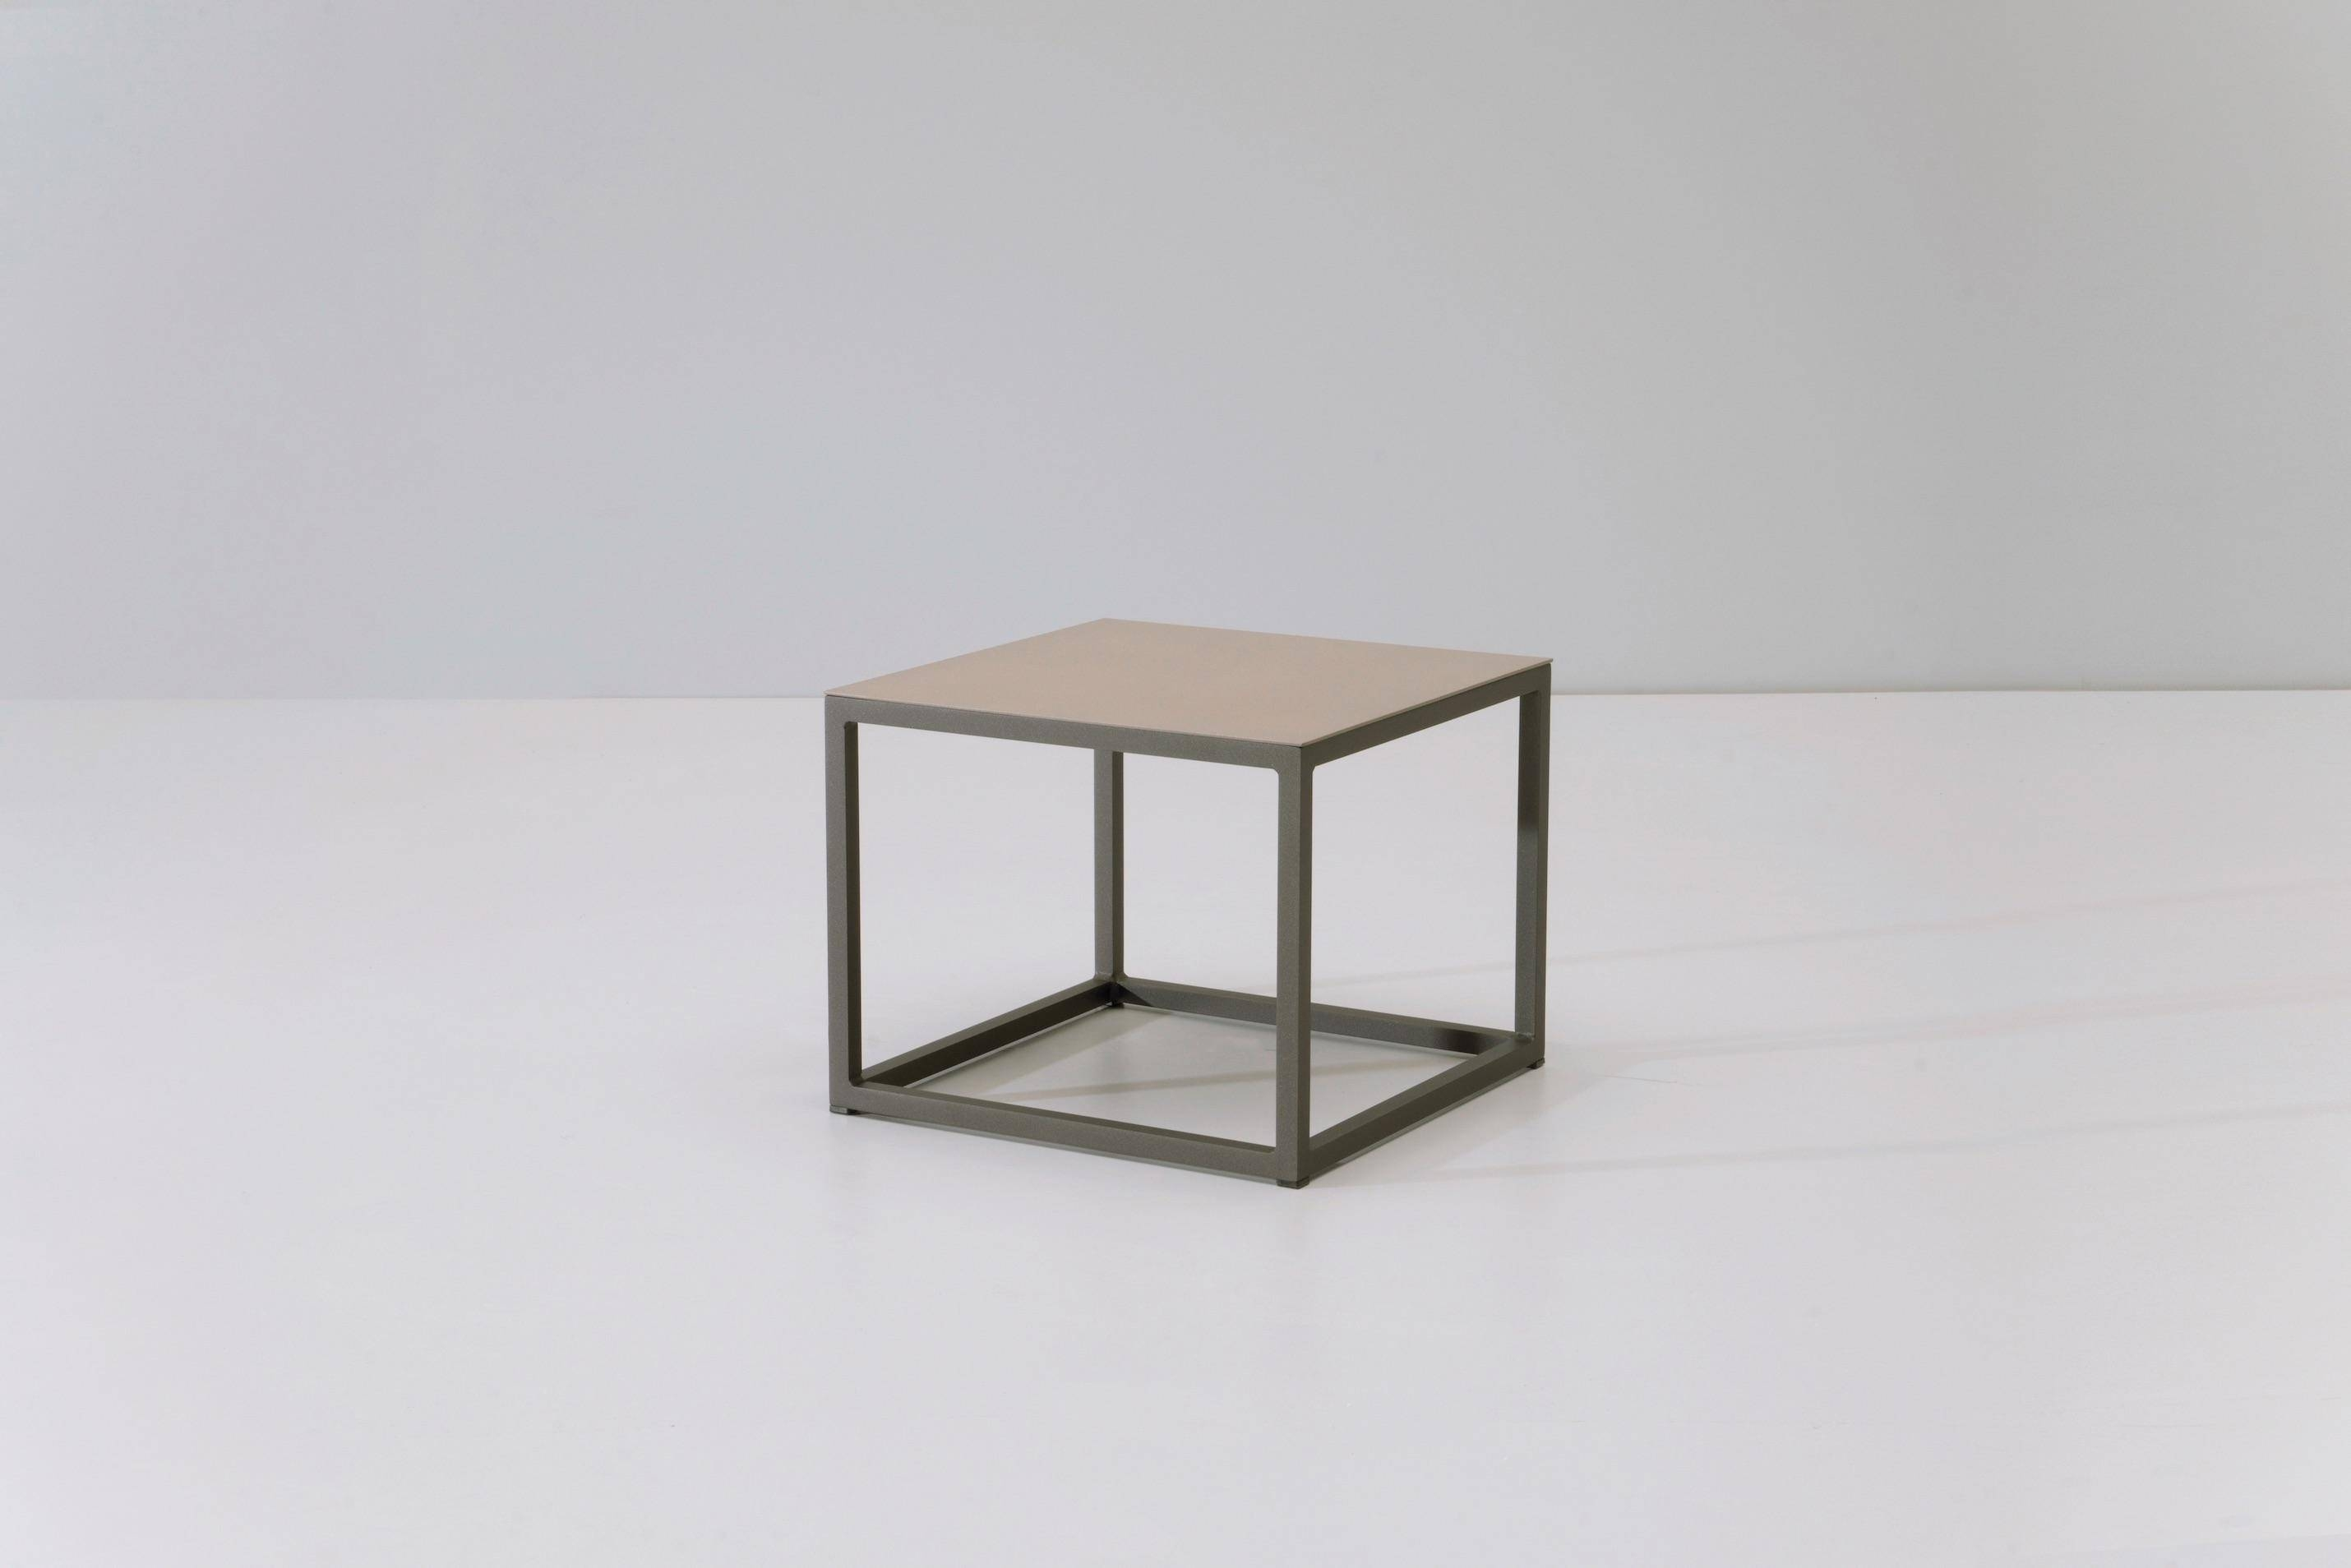 Kettal | Typology | Tables intended for Aluminium Coffee Tables (Image 15 of 30)